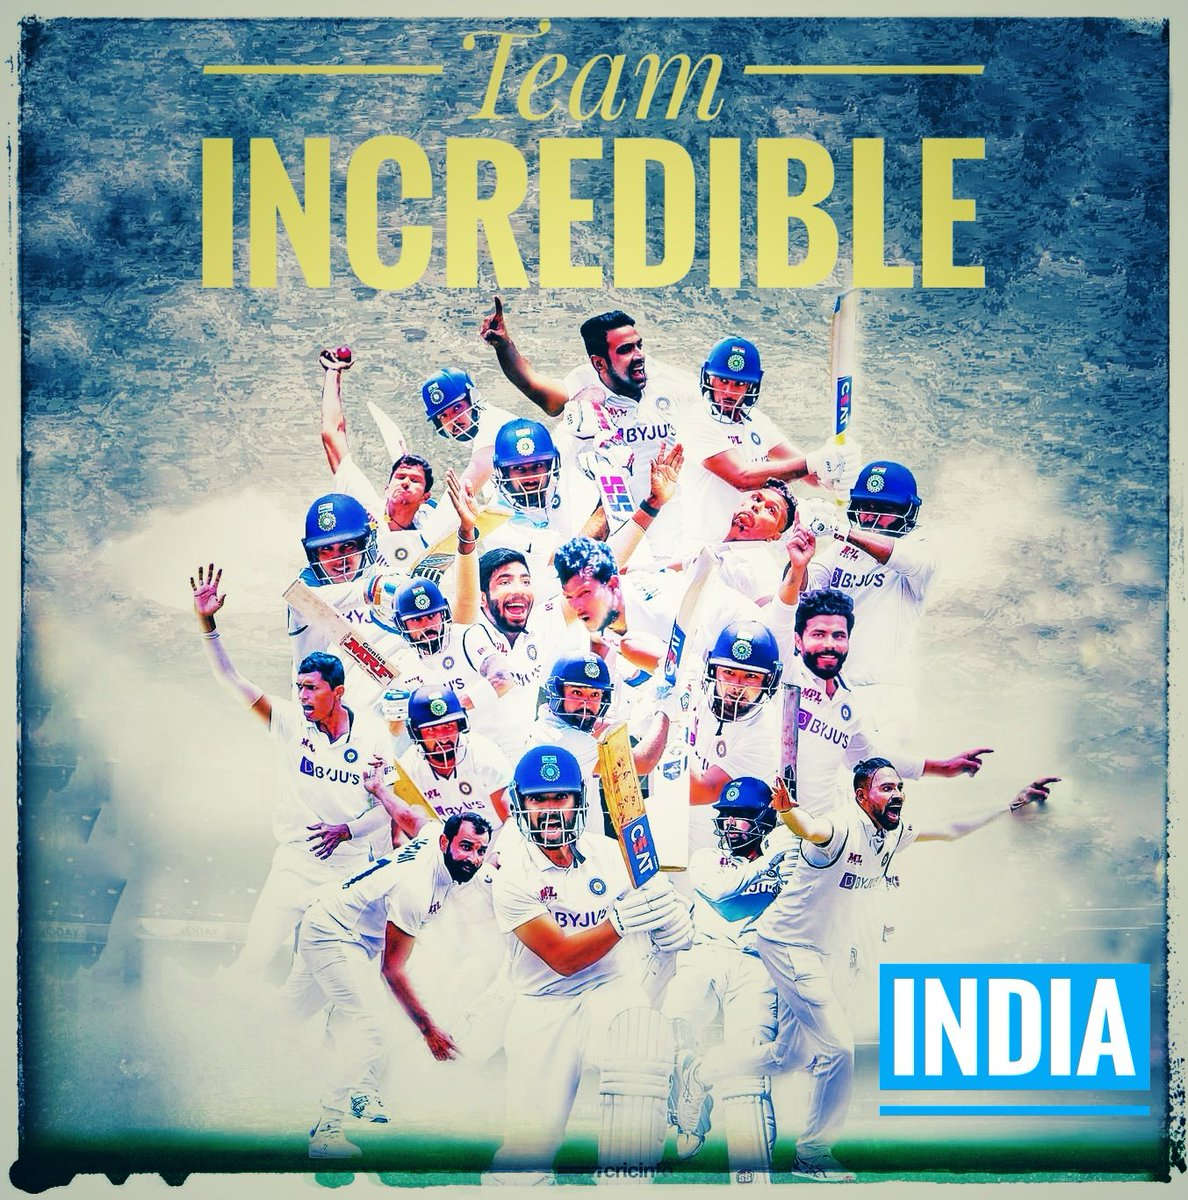 What a brave performance from Team India. An overall team effort. Everyone shined at different circumstances. The confidence given by @ajinkyarahane88 @ImRo45 to the youngsters pushed them to achieve. Great knocks and incredible bowling. @BCCI #IndiavsAustralia #IndianCricketTeam